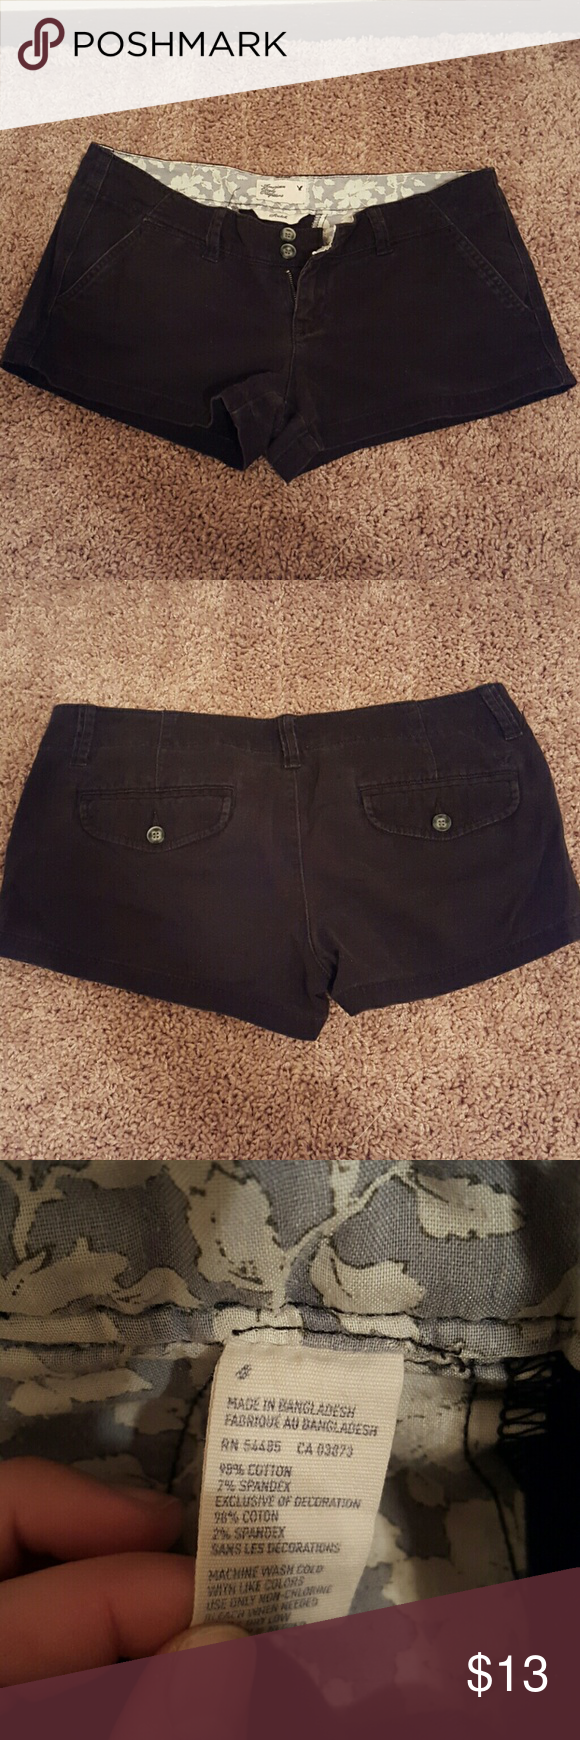 Black American Eagle Short Very soft and comfy short american eagle shorts. Just dont fit anymore. American Eagle Outfitters Shorts